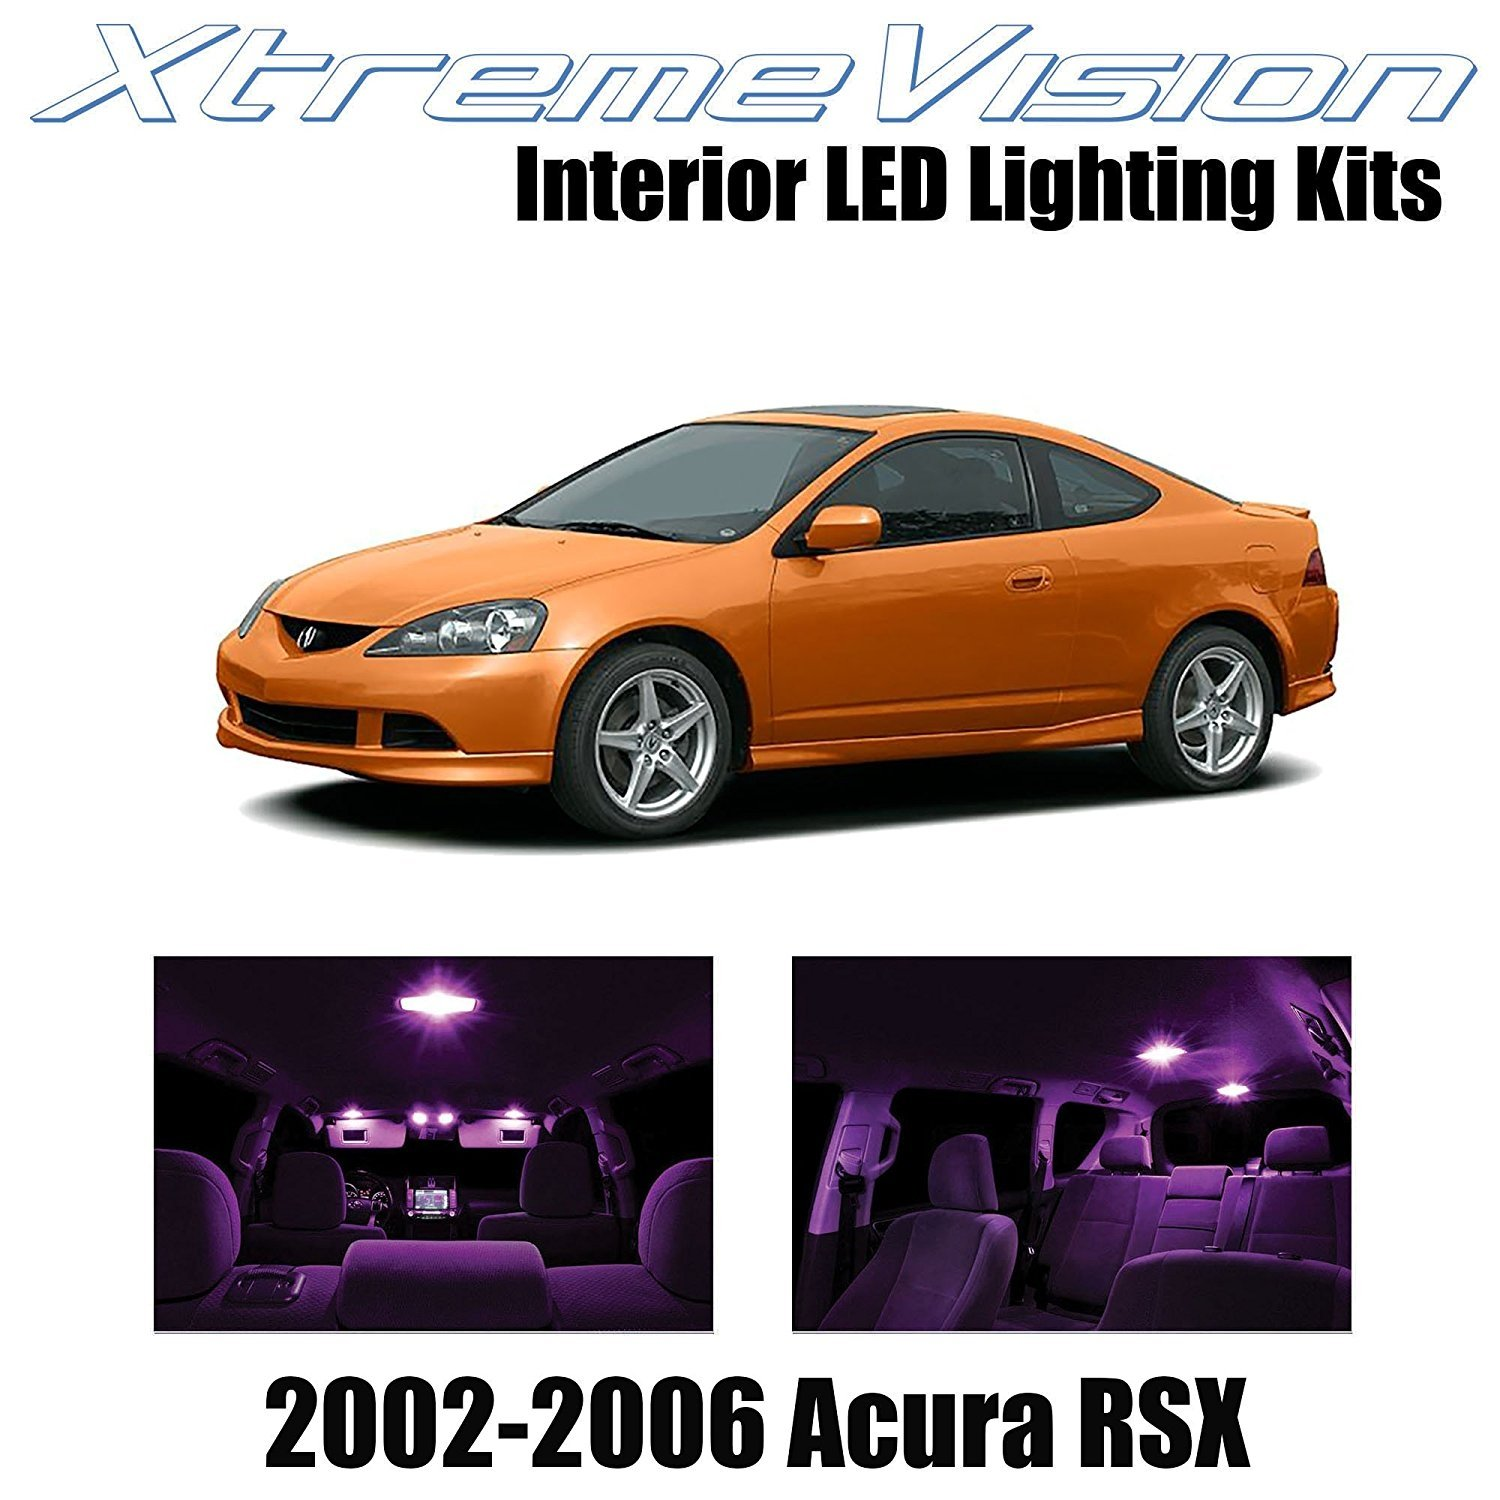 XtremeVision LED for Acura RSX 2002-2006 (10 Pieces) Pink Premium Interior LED Kit Package + Installation Tool